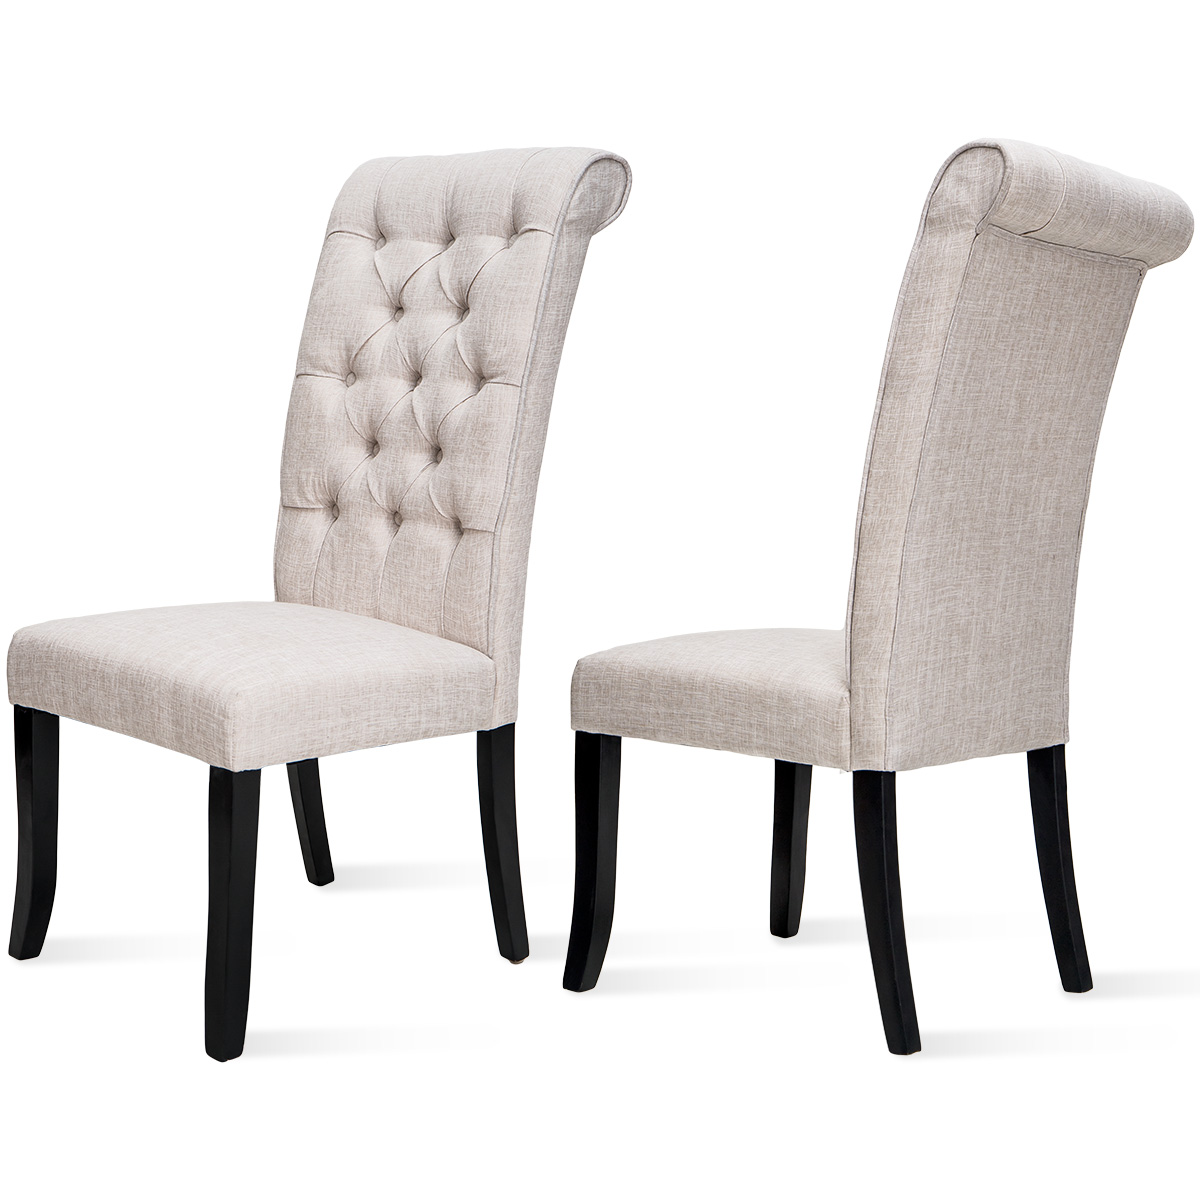 2pcs fabric upholstered parsons tufted dining chairs set of 2 upholstered high back padded dining chairs w solid rubber wood legs for